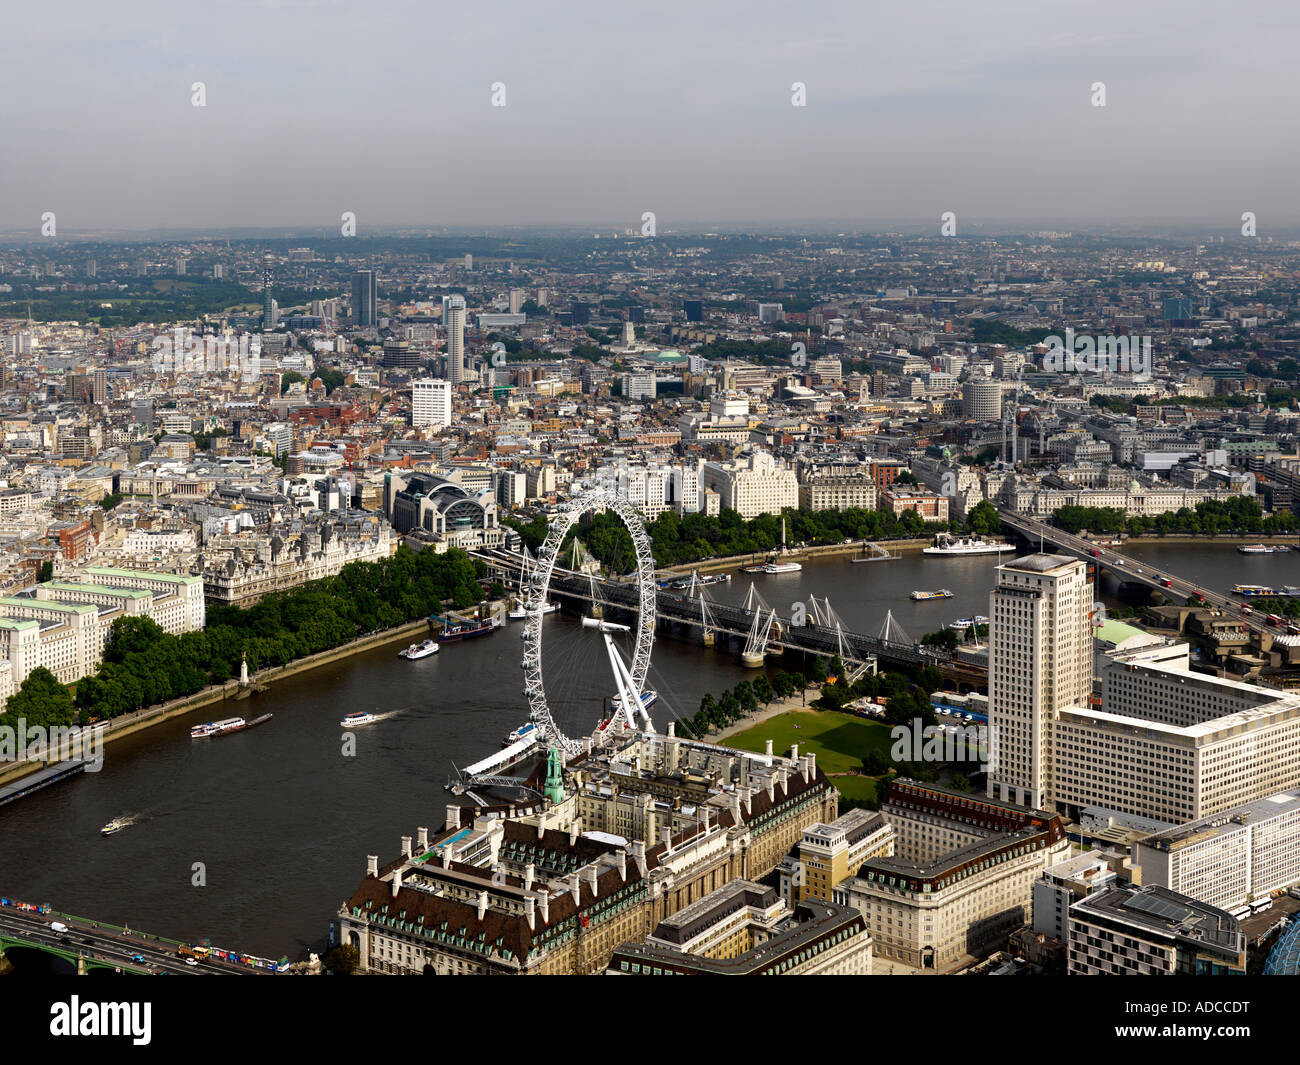 London Aerial Shot Stock Photo